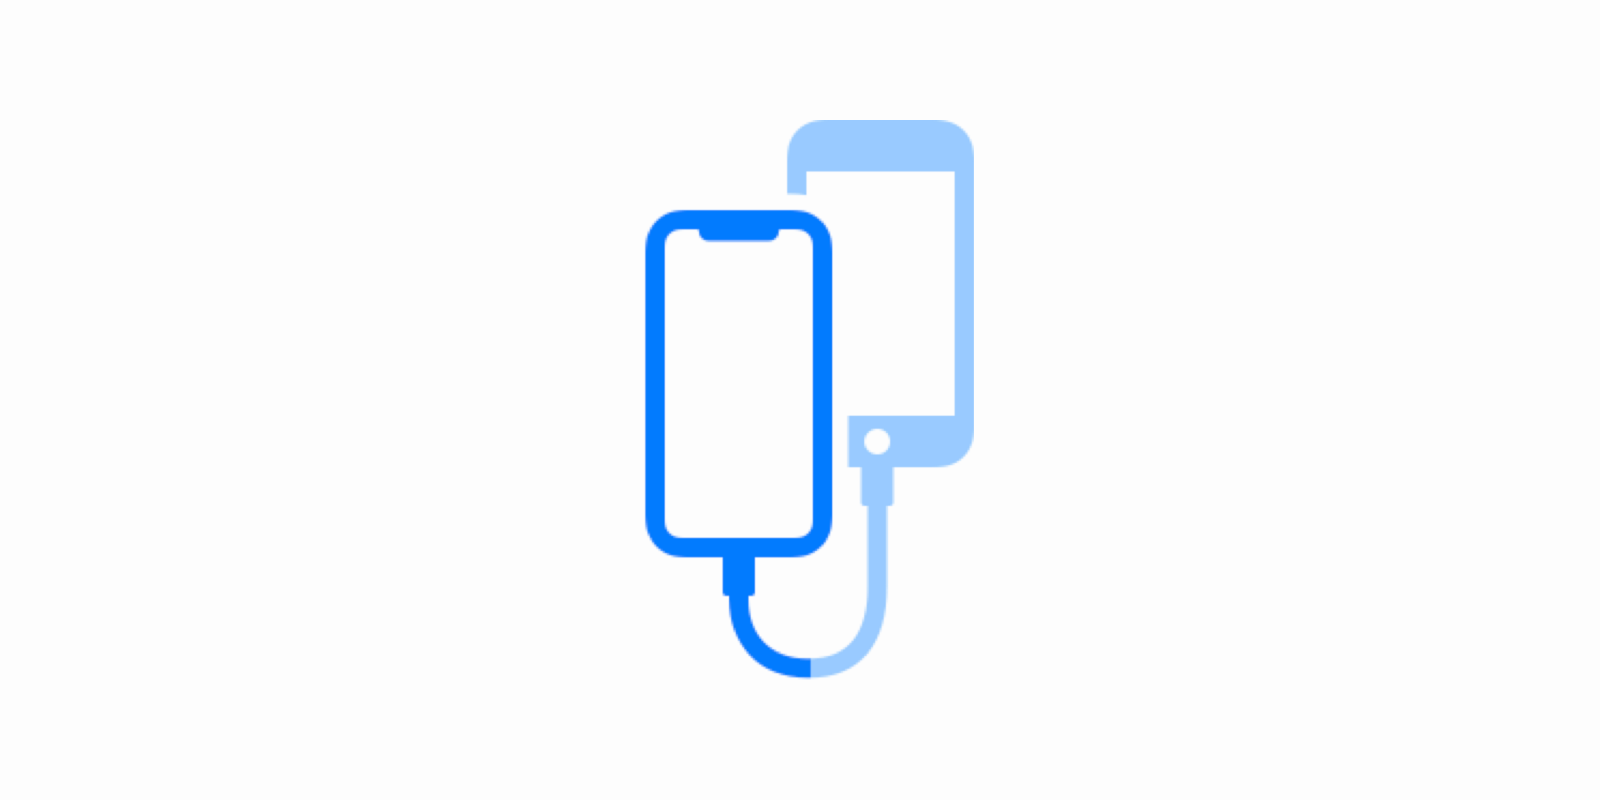 iOS 13 beta 3 suggests new wired method for transferring data between devices